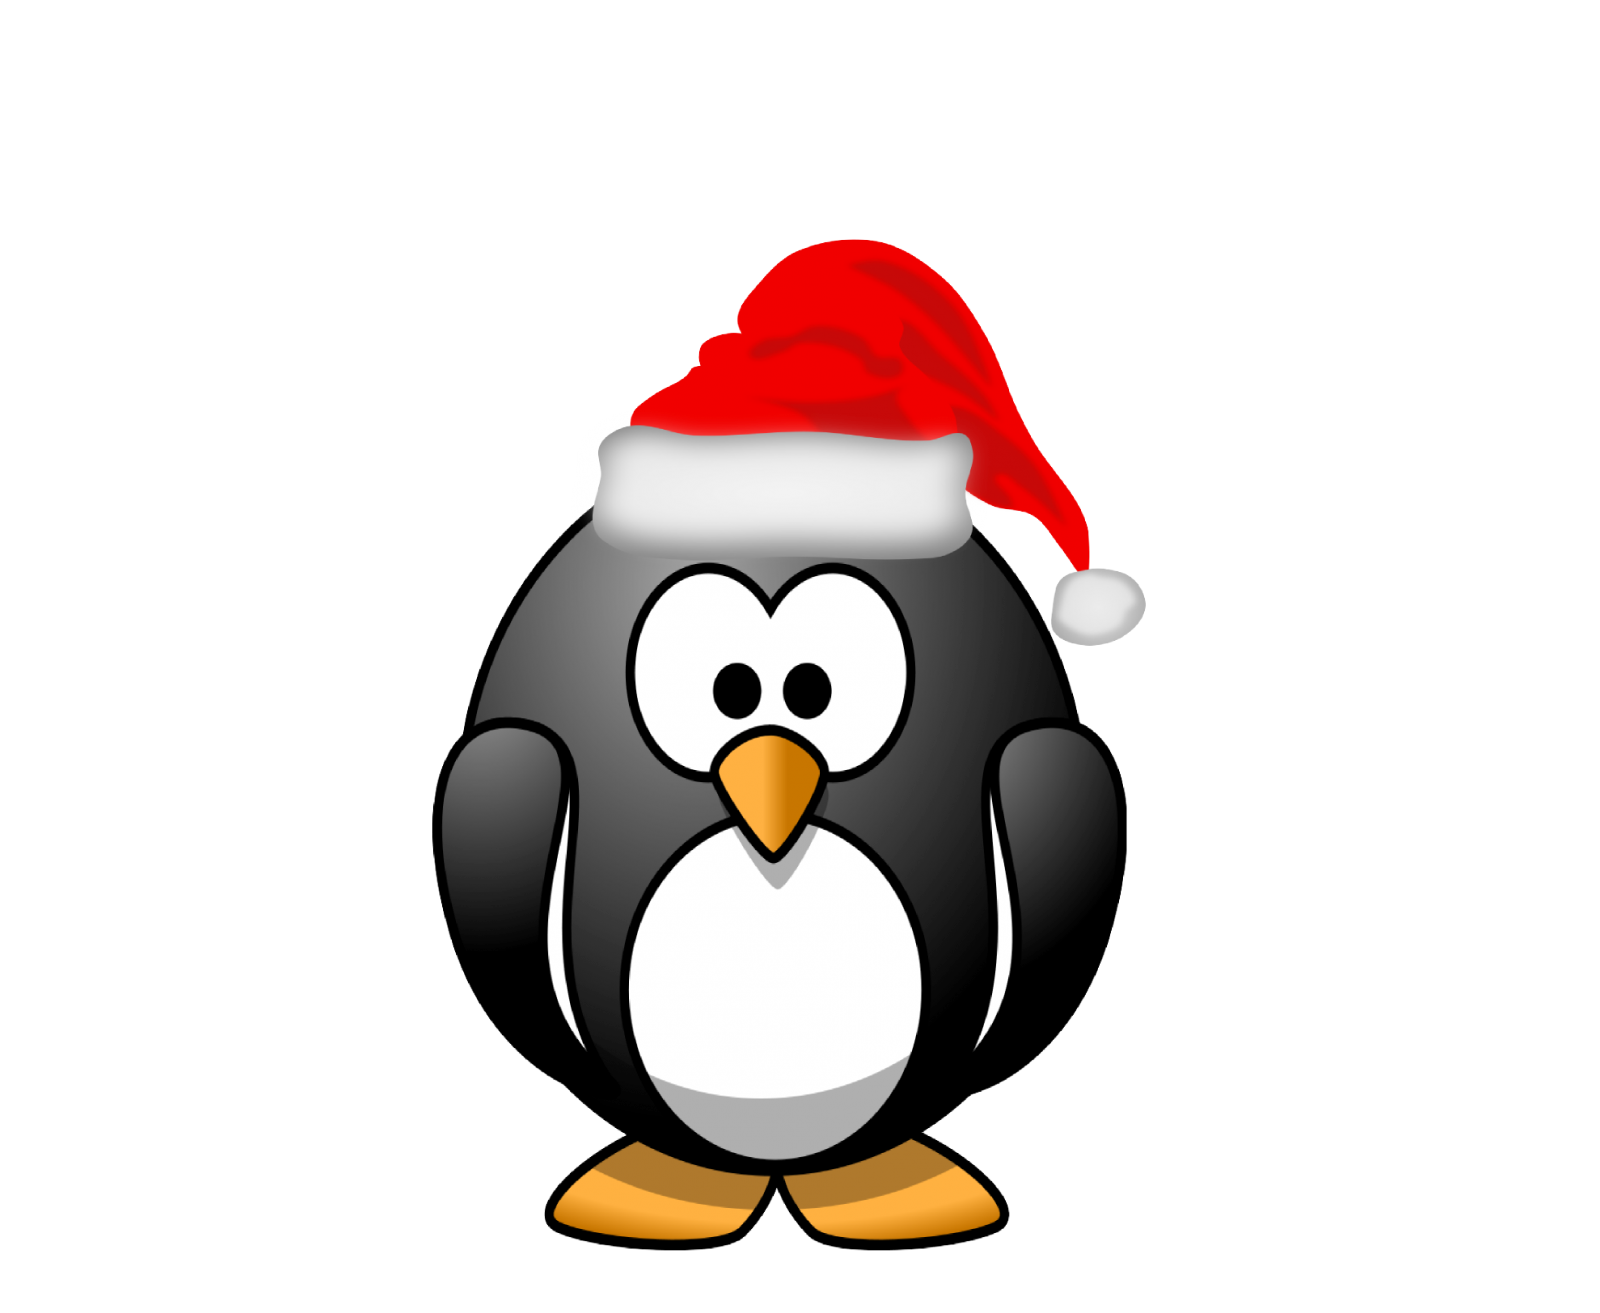 Free christmas penguin clipart image freeuse library Free Christmas Penguin Wallpaper Best Of Download Awesome Linux ... image freeuse library